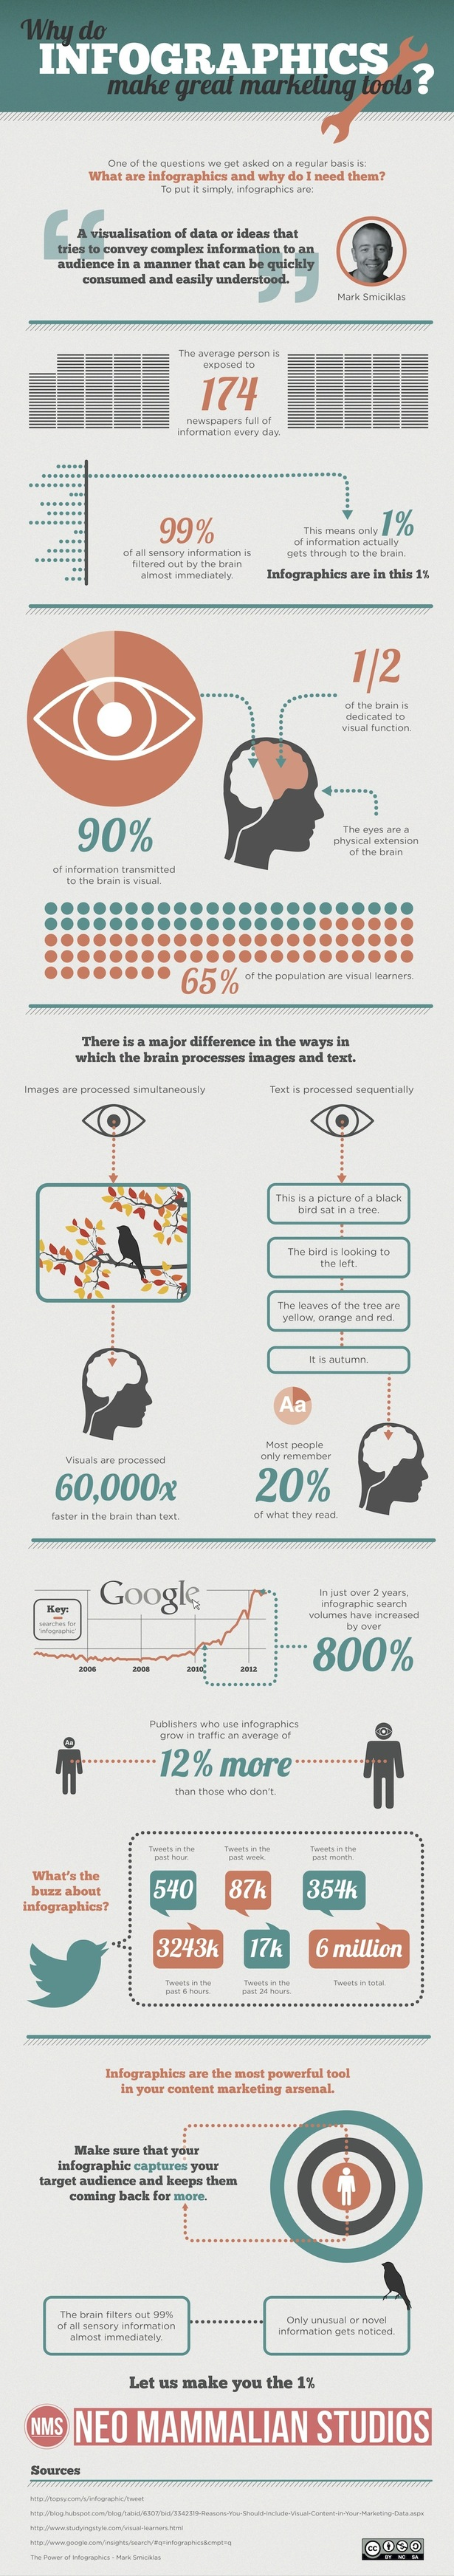 Why do Infographics Make Great #Marketing Tools? [infographic]